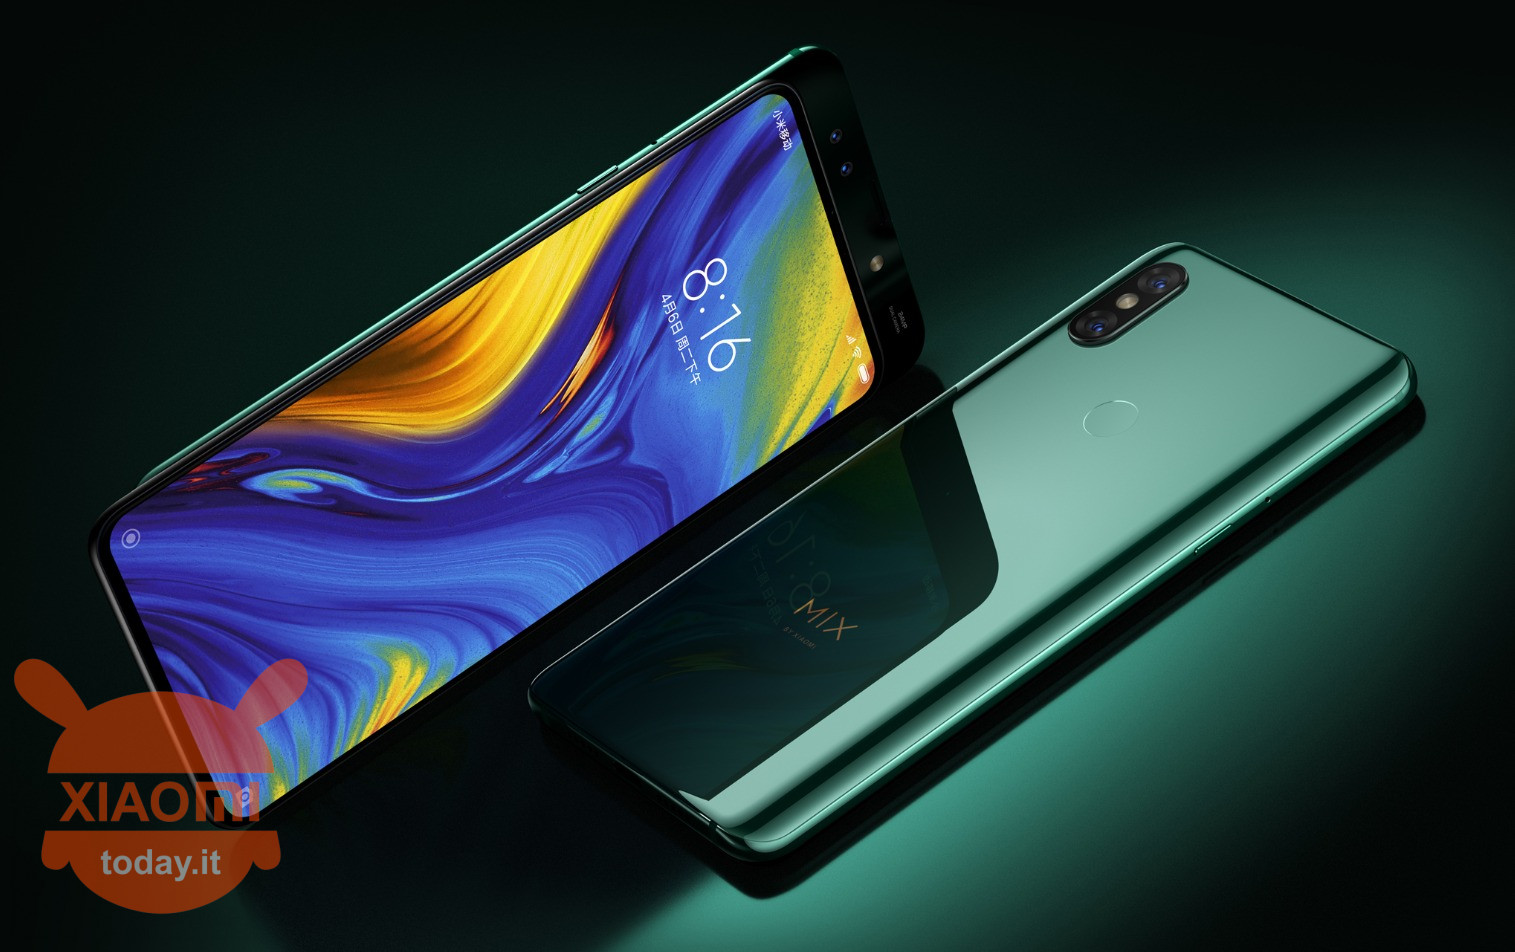 Xiaomi Mi MIX 3 Emerald Green